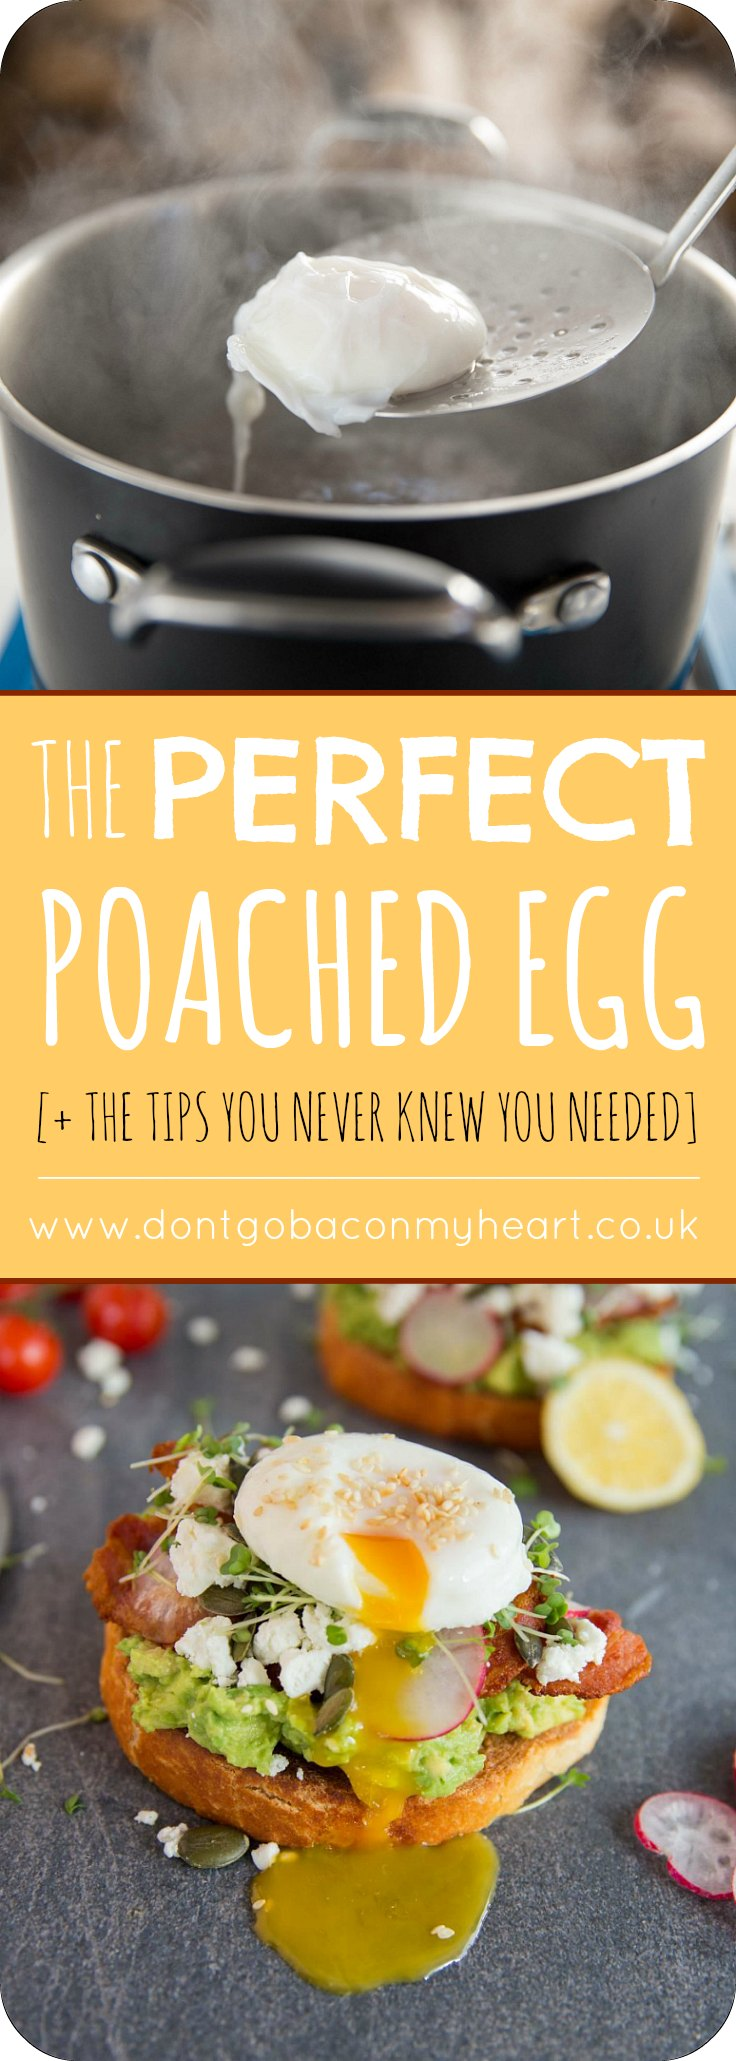 There's a few simple but crucial steps in creating the Perfect Poached Egg. Here in 5 easy steps you'll see how to get perfectly poached eggs every single time! #egg #poachedegg #breakfast | www.dontgobaconmyheart.co.uk